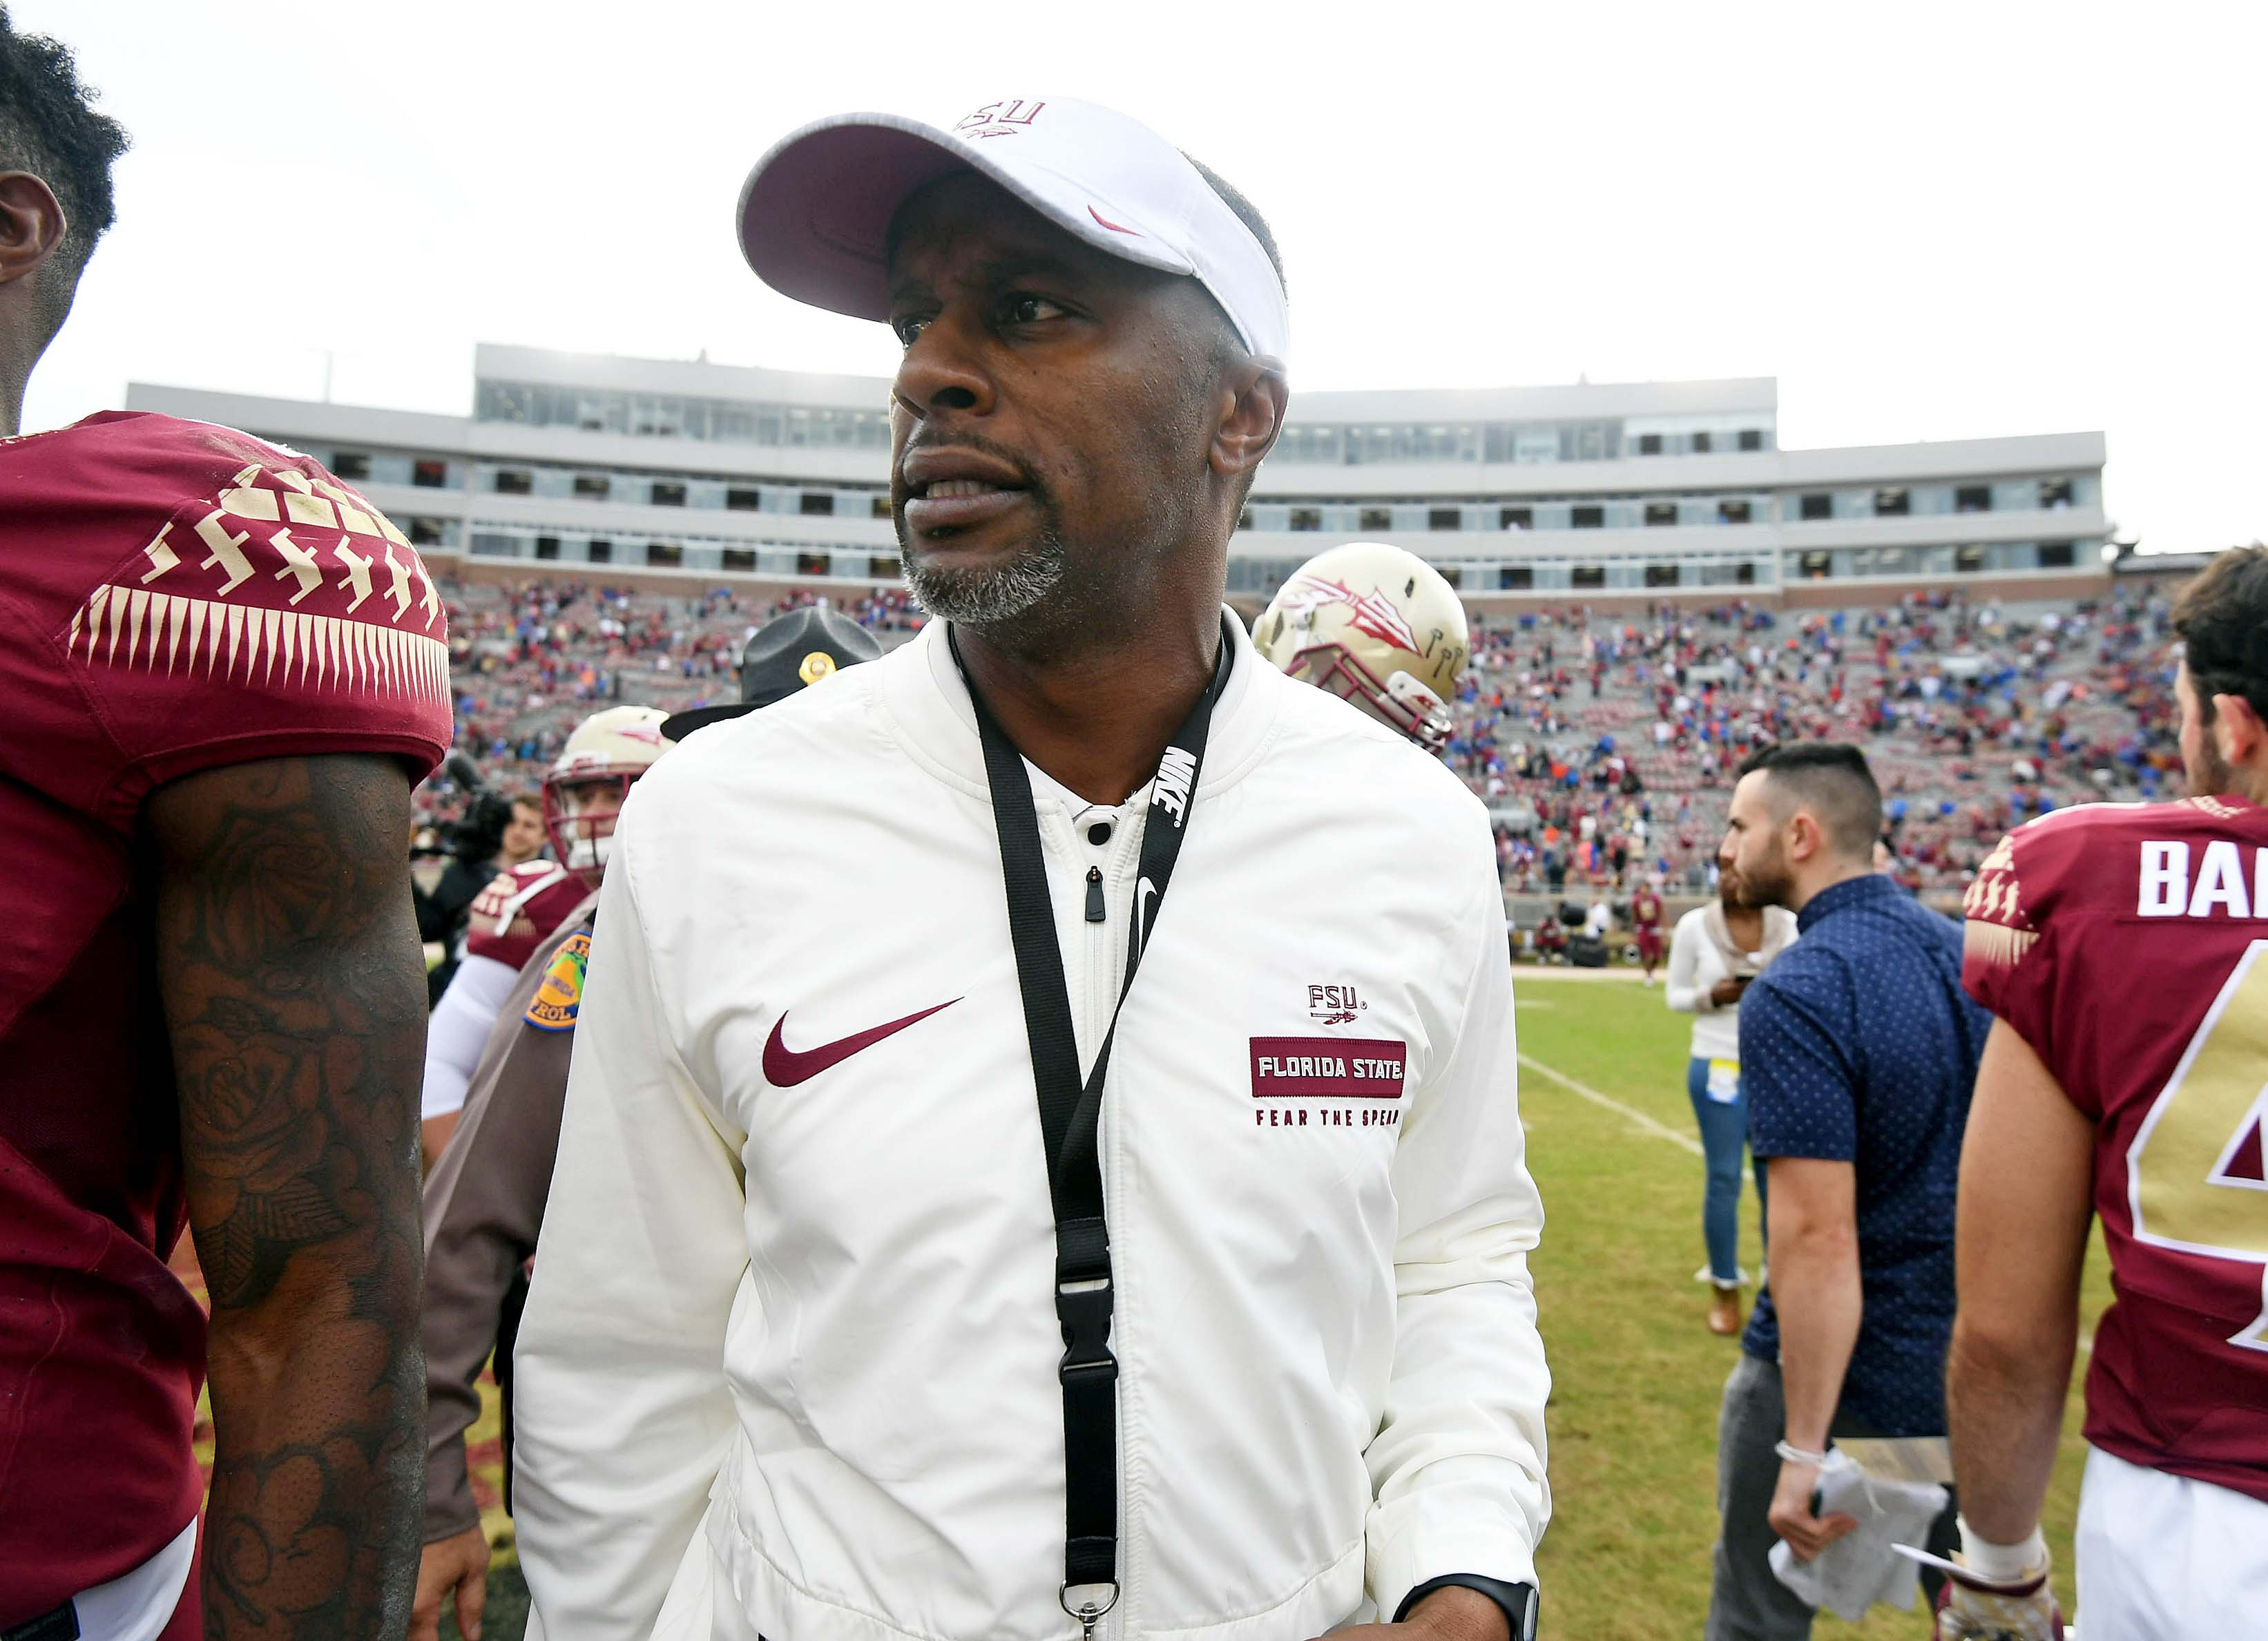 Company fires employee after racially charged post targeting FSU coach Willie Taggart